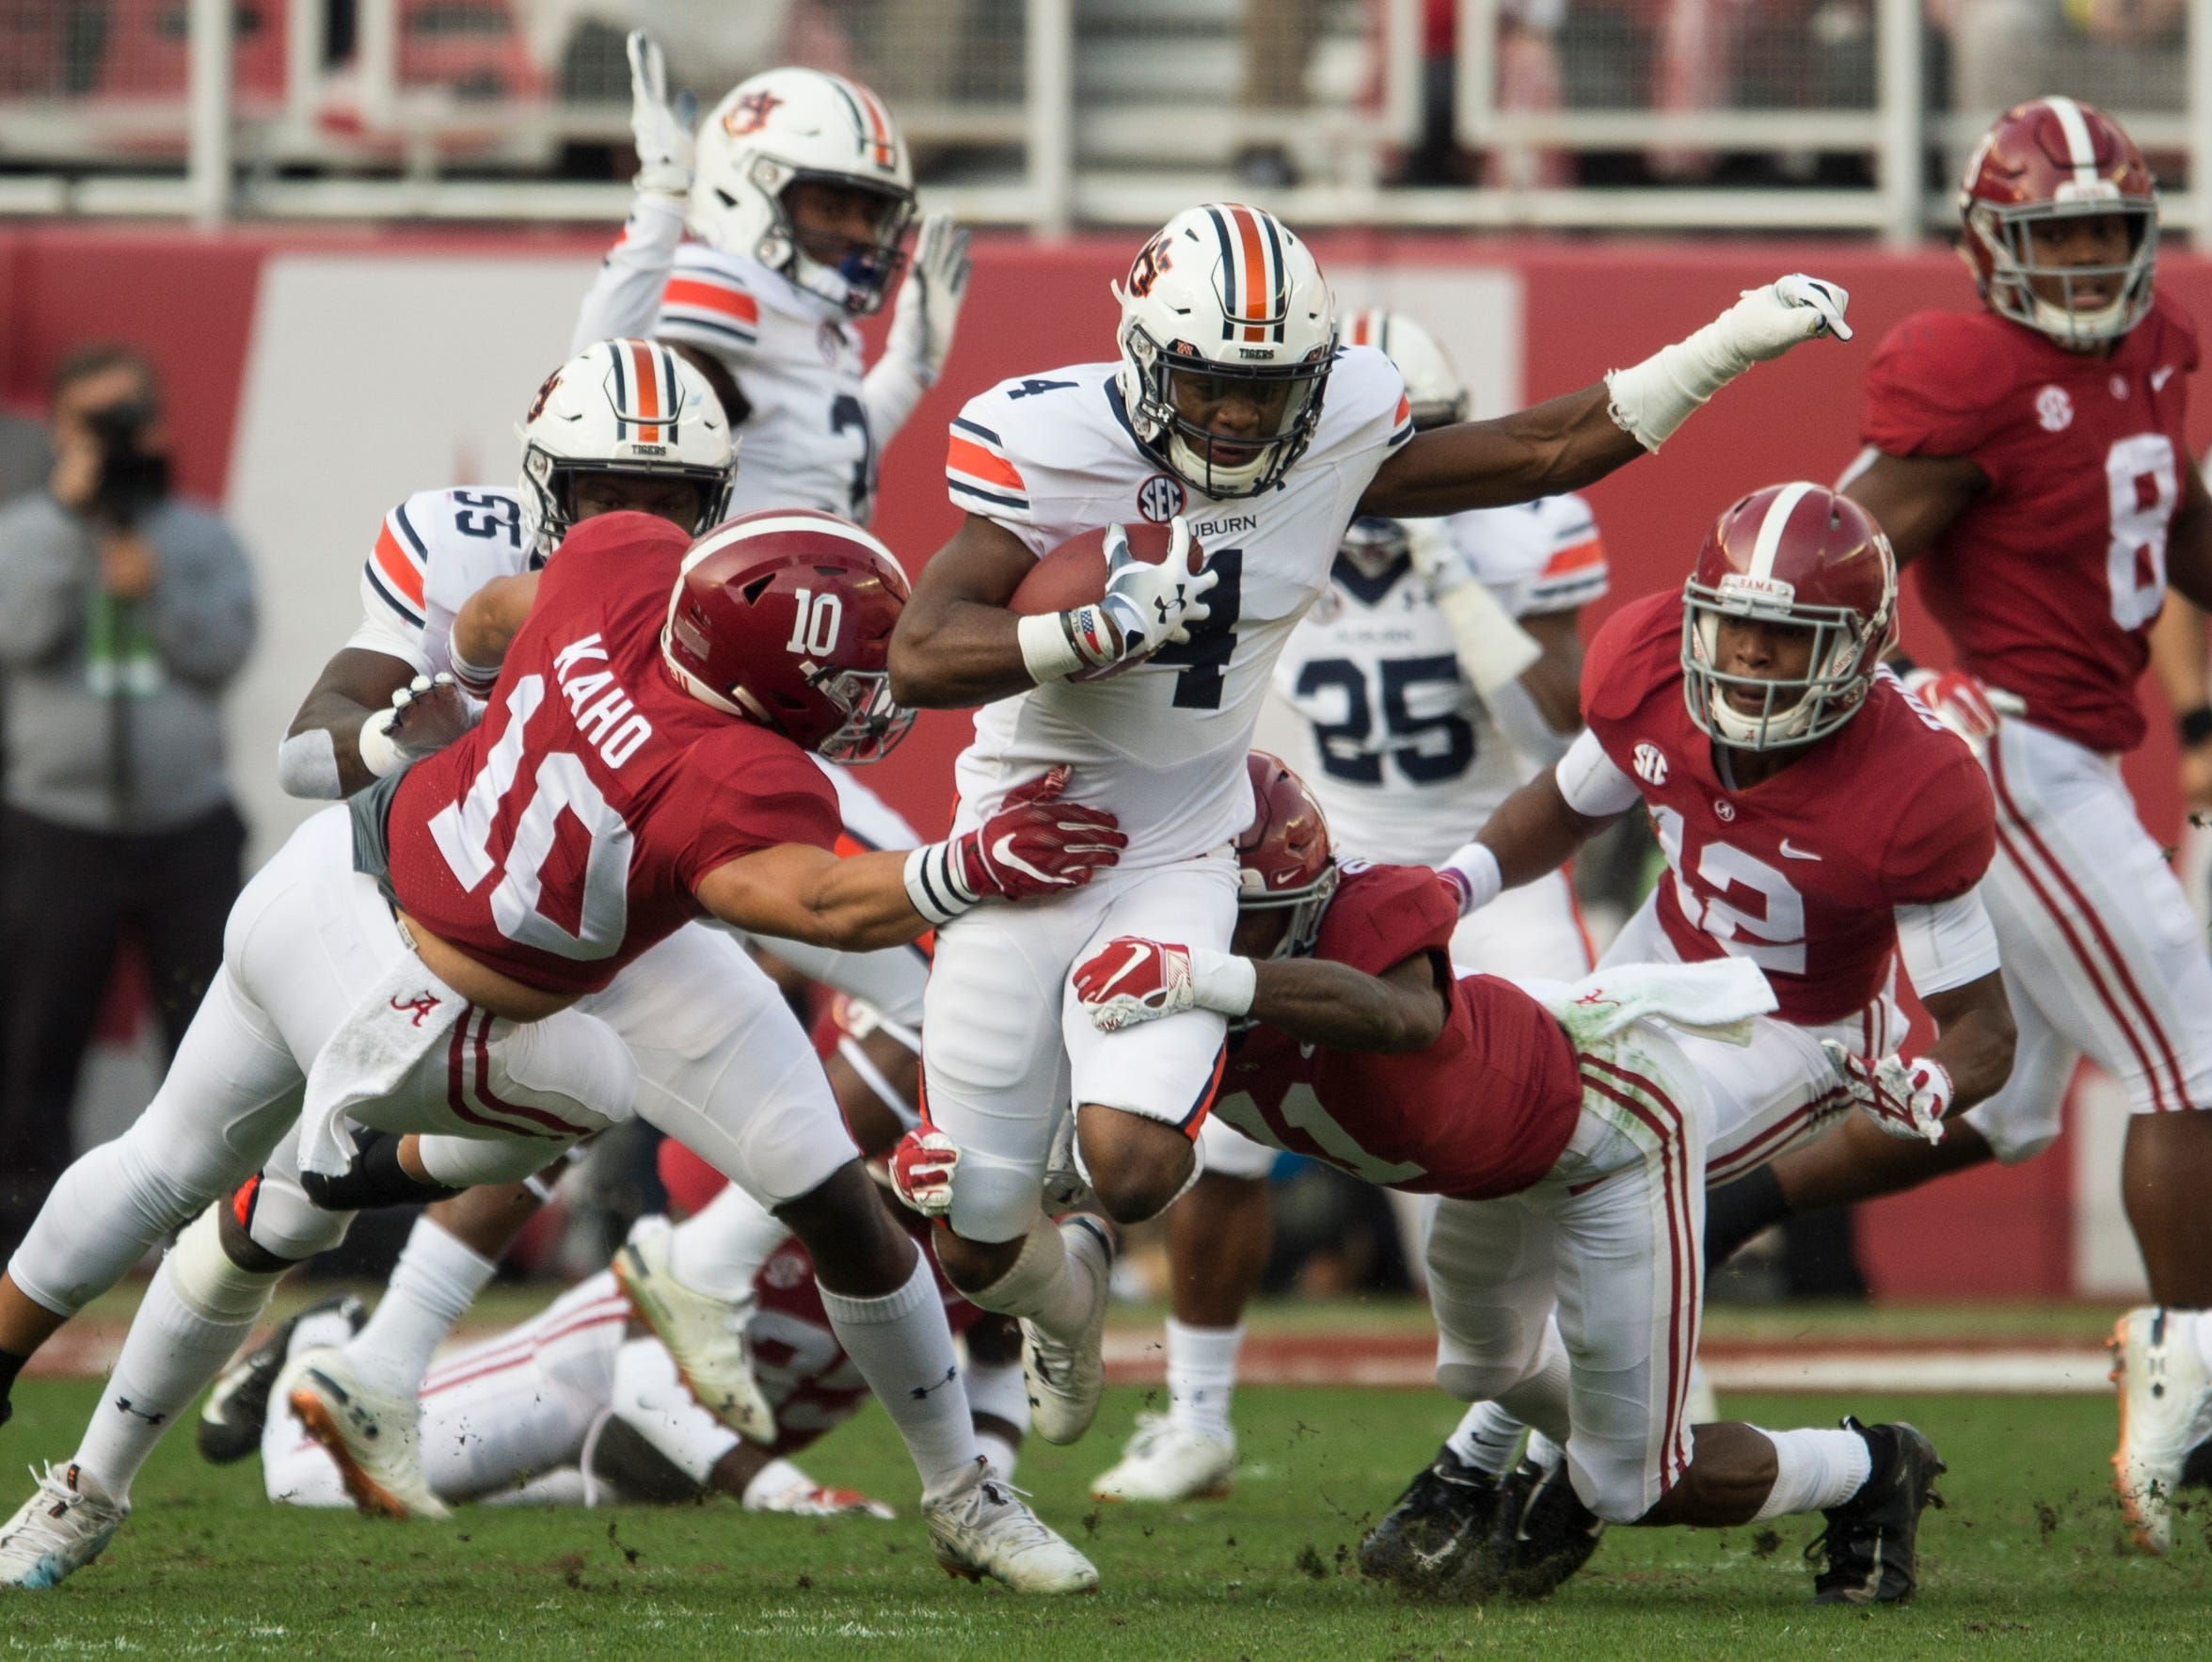 Auburn defensive back Noah Igbinoghene (4) is taken down as he returns a kick off during the Iron Bowl at Bryant-Denny Stadium in Tuscaloosa, Ala., on Saturday, Nov. 24, 2018. Alabama leads Auburn 17-14 at halftime.